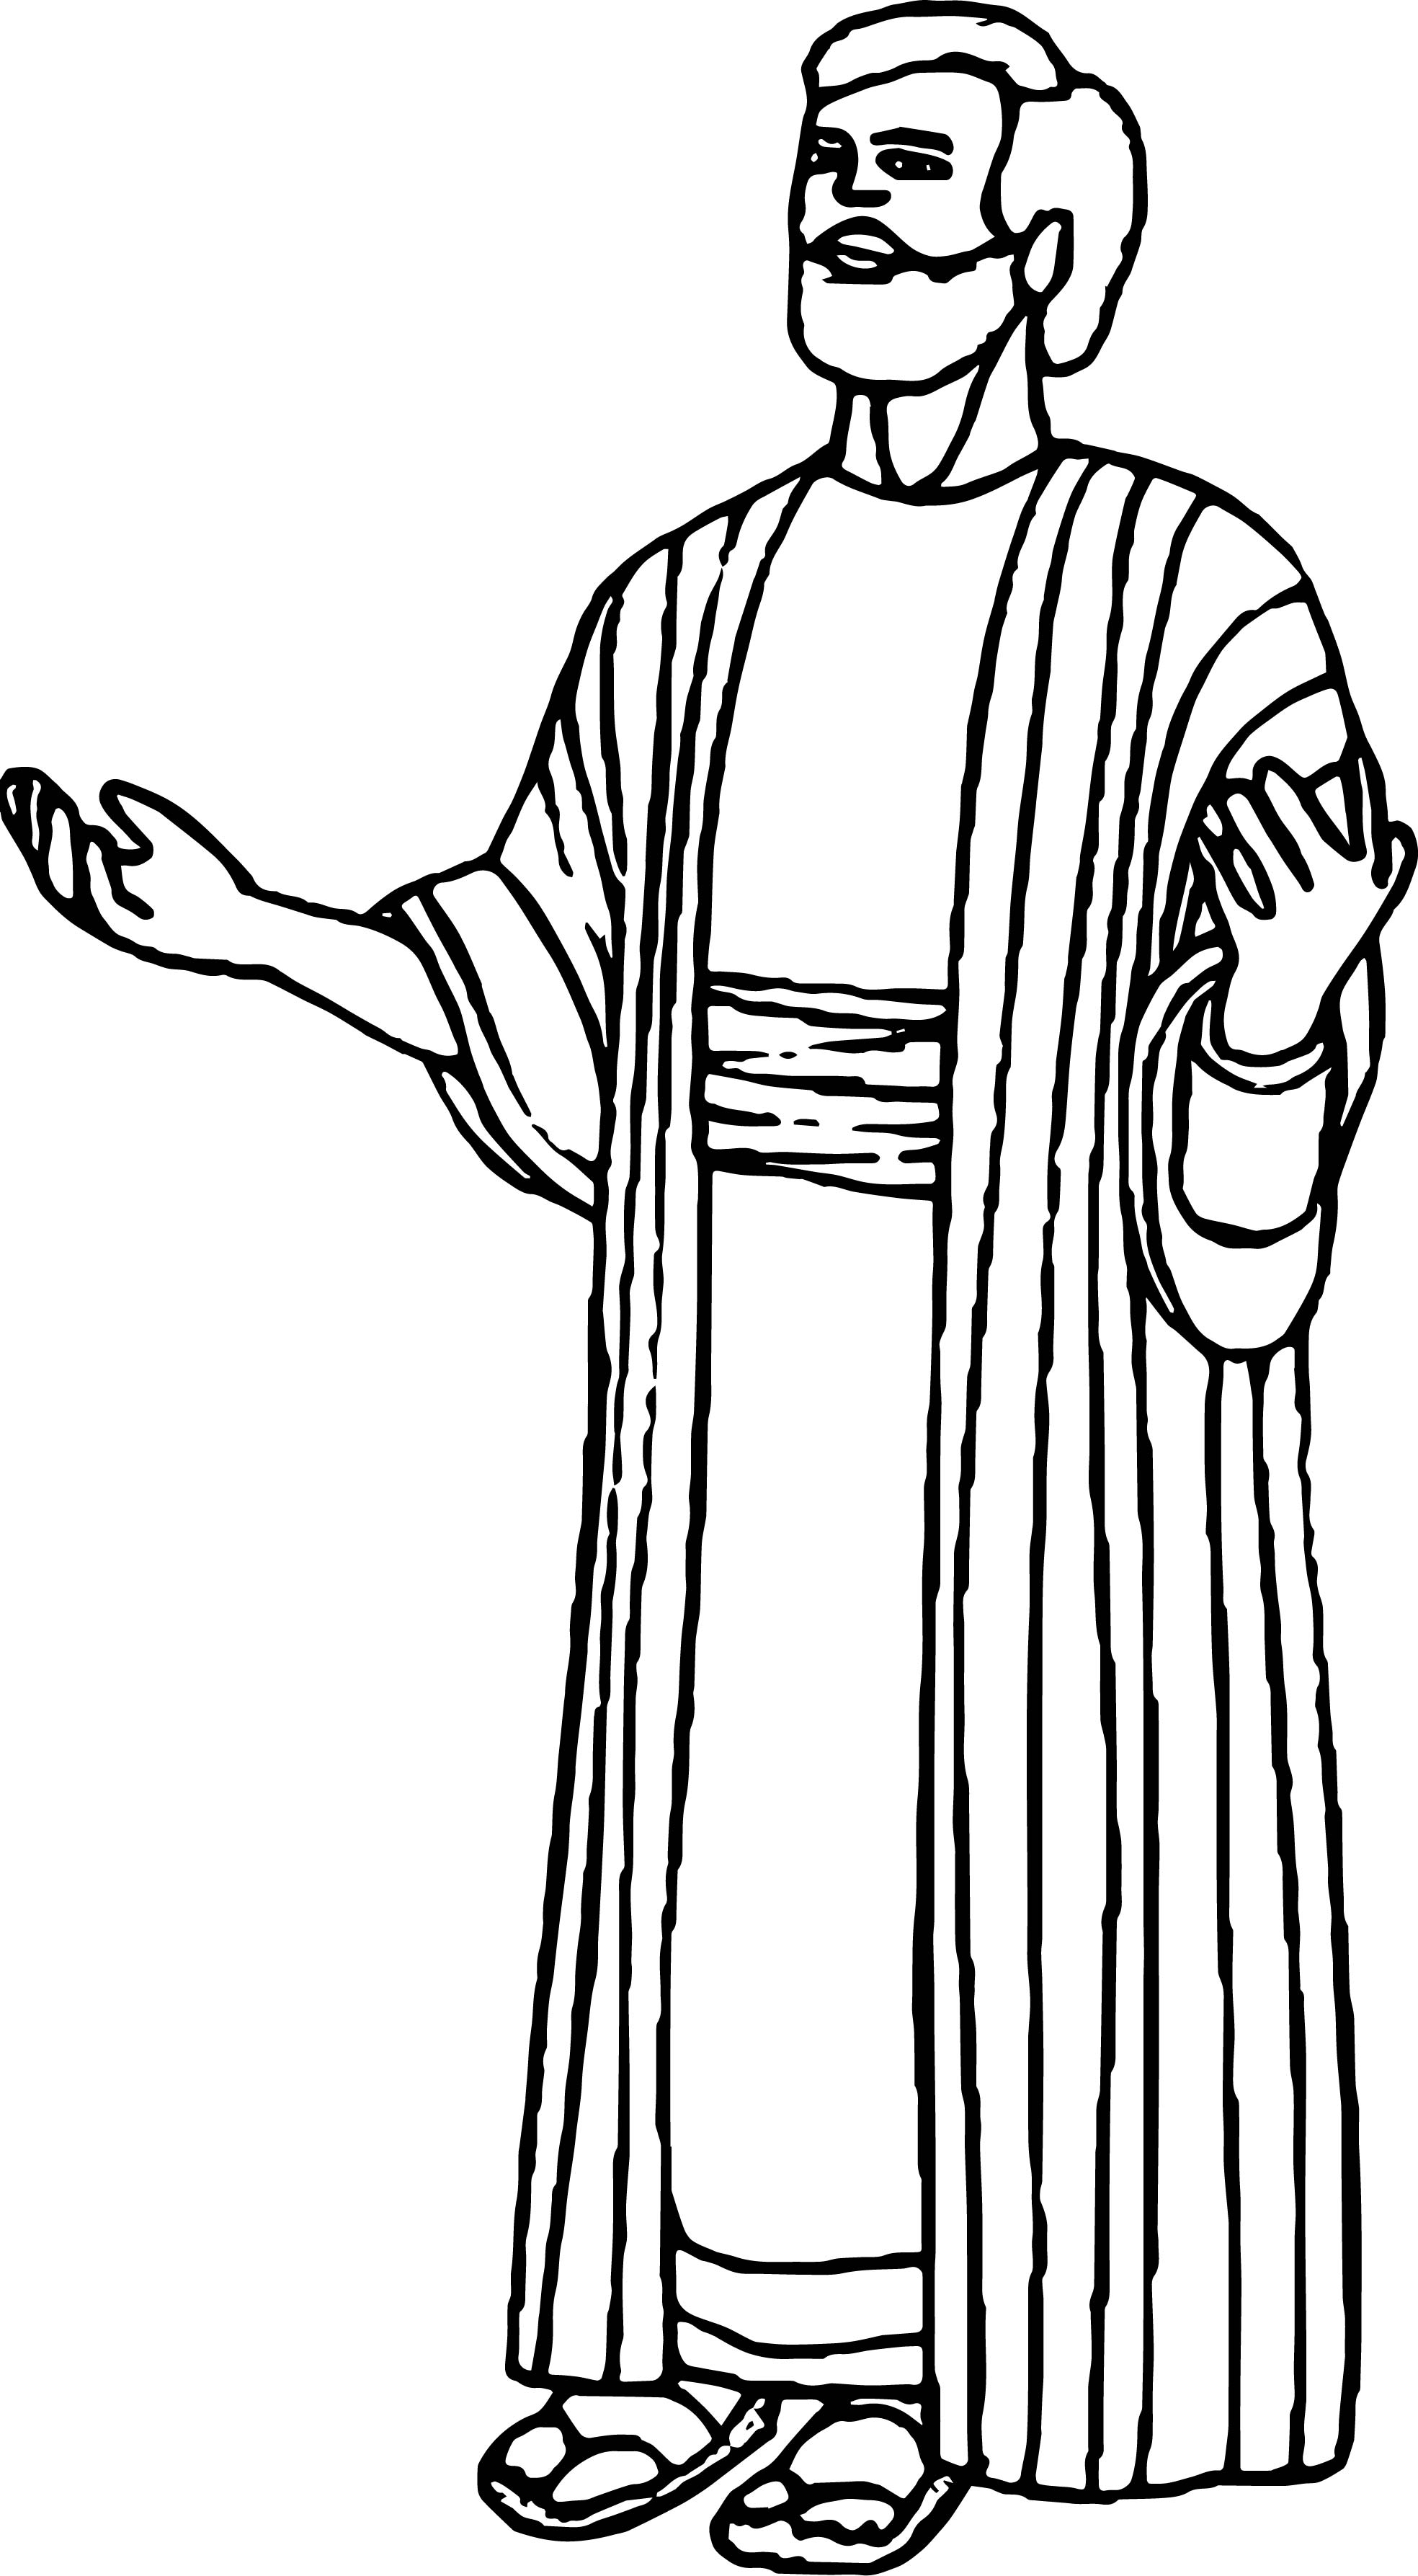 paul the apostle coloring pages - photo#15